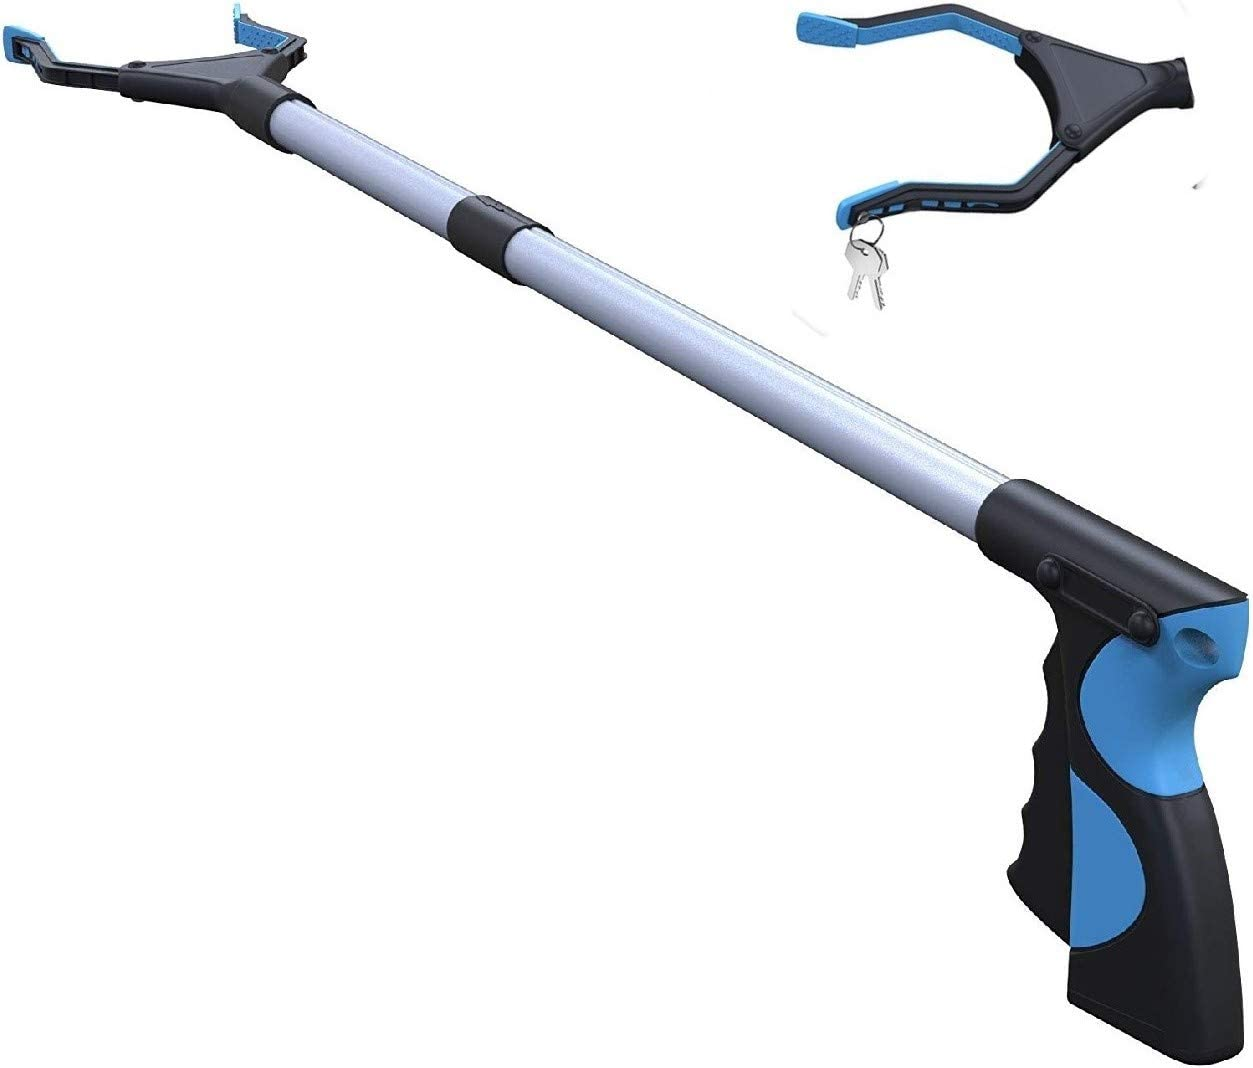 """Grabber Reacher Tool,FitPlus Grabber With Strong Magnet 32"""", 2 Year Warranty Extra Thick Steel Cable Grabber Reacher for Elderly, Lightweight Extra Long Handy Trash Picker Upper Claw Grabber: Health & Personal Care"""